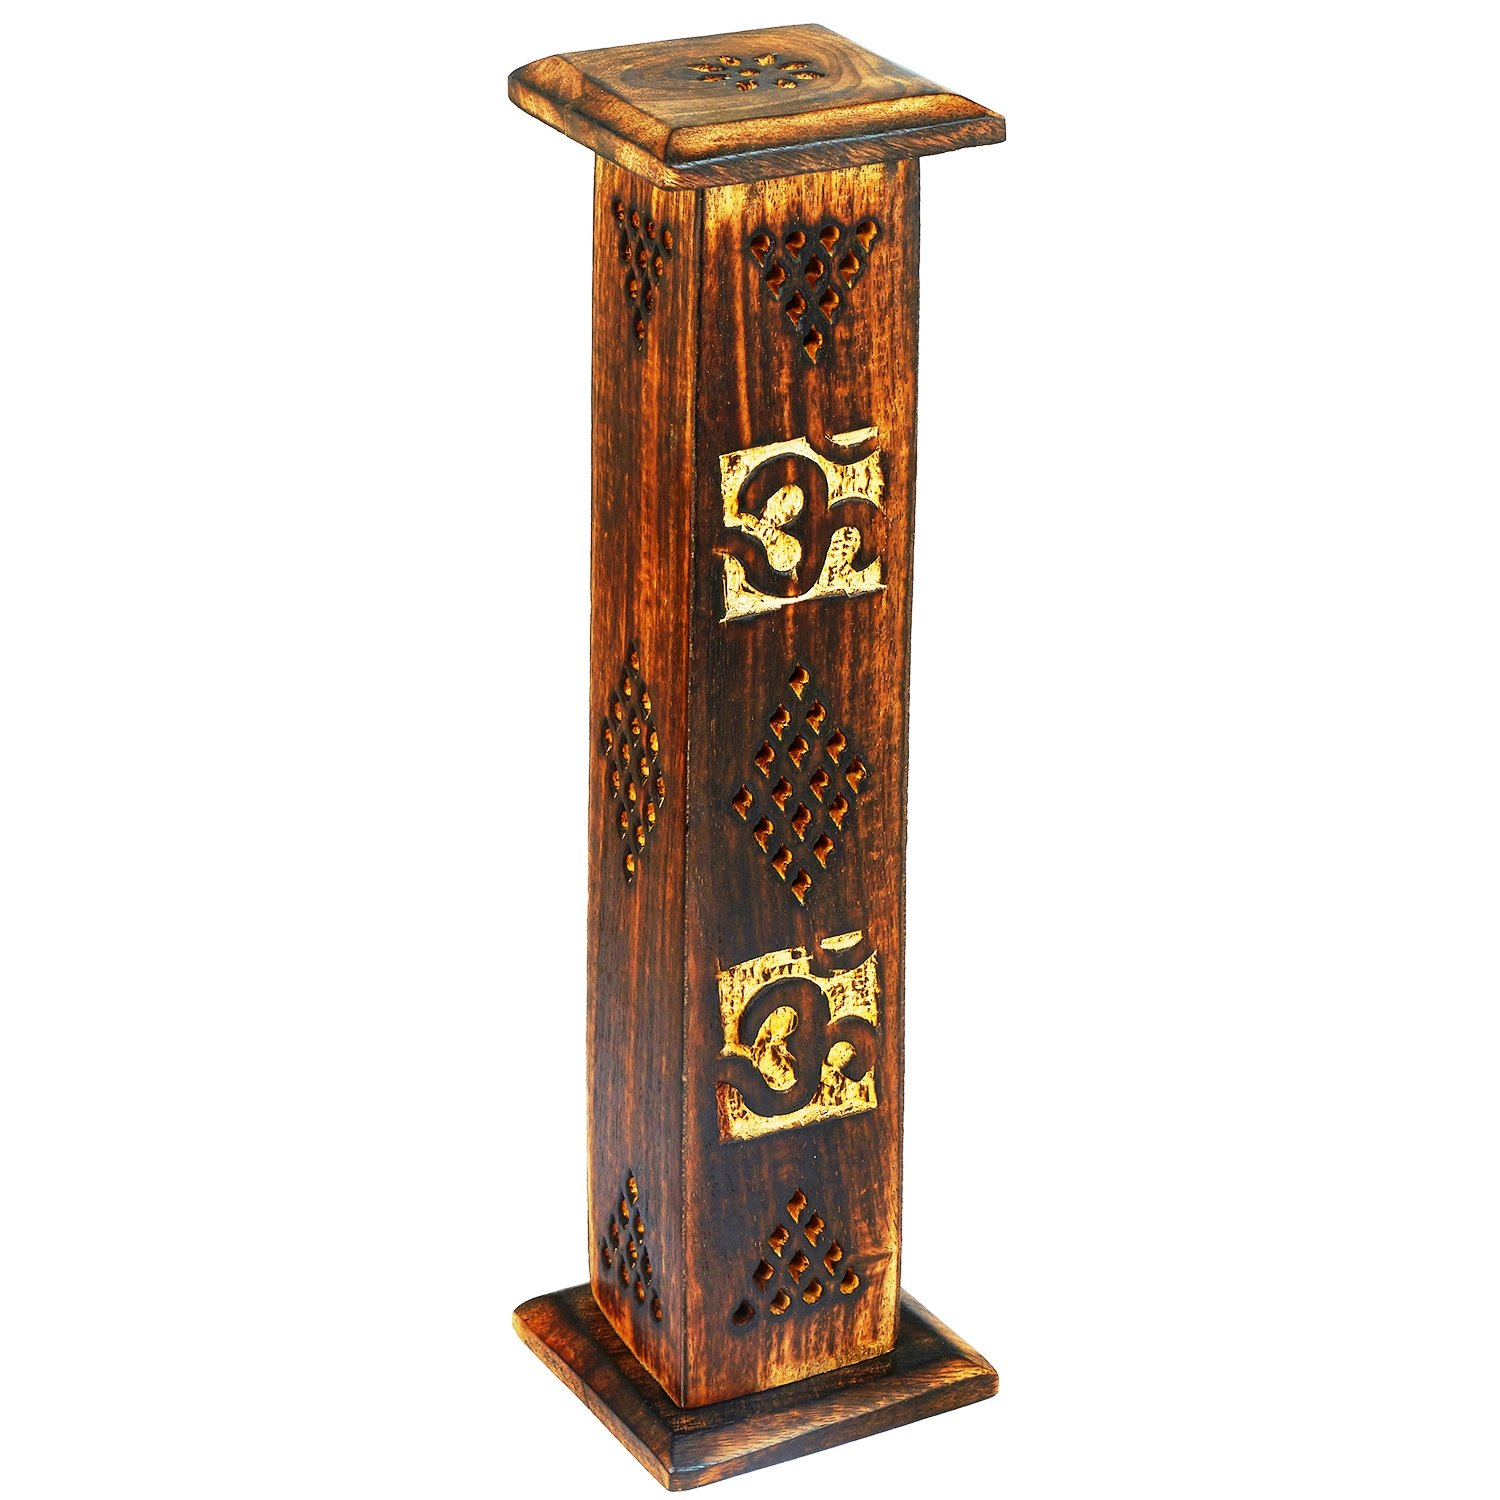 Wooden Incense Stick & Cone Burner Holder Tower Large Organic Eco Friendly Ash Catcher Agarbatti Holder Rustic Style Hand Carved for Meditation Yoga Aromatherapy Home Fragrance Products The Great Indian Bazaar